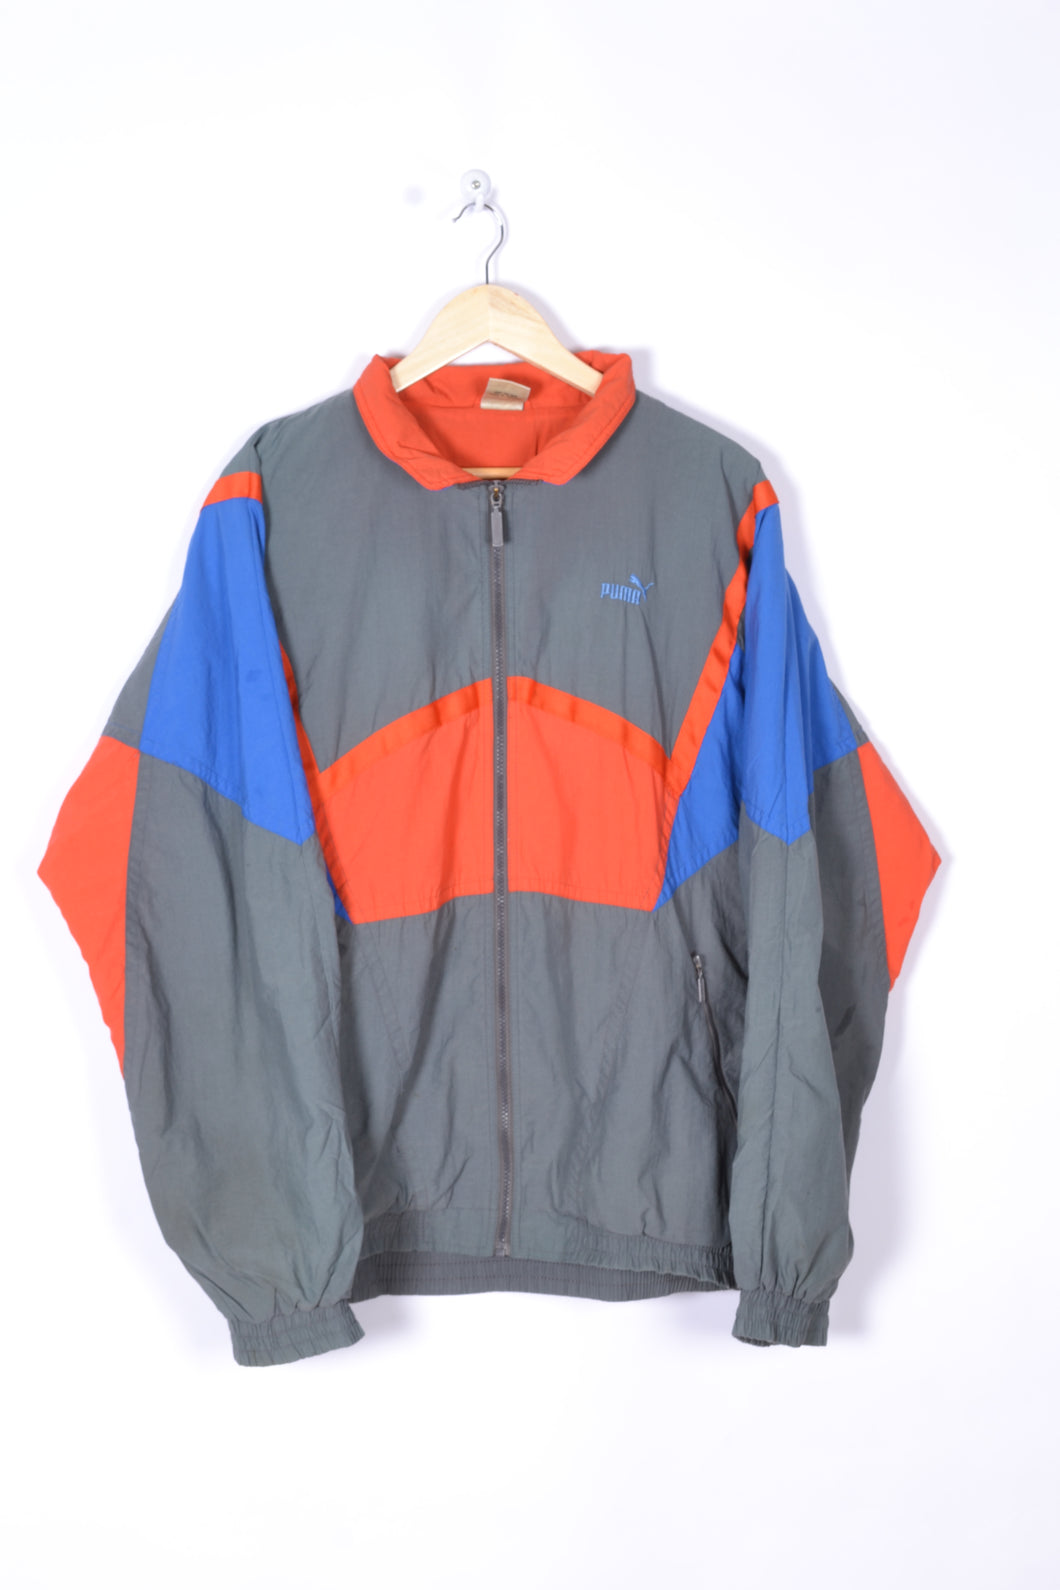 Puma Vintage Shell Jacket Grey/Orange/Blue Large XL